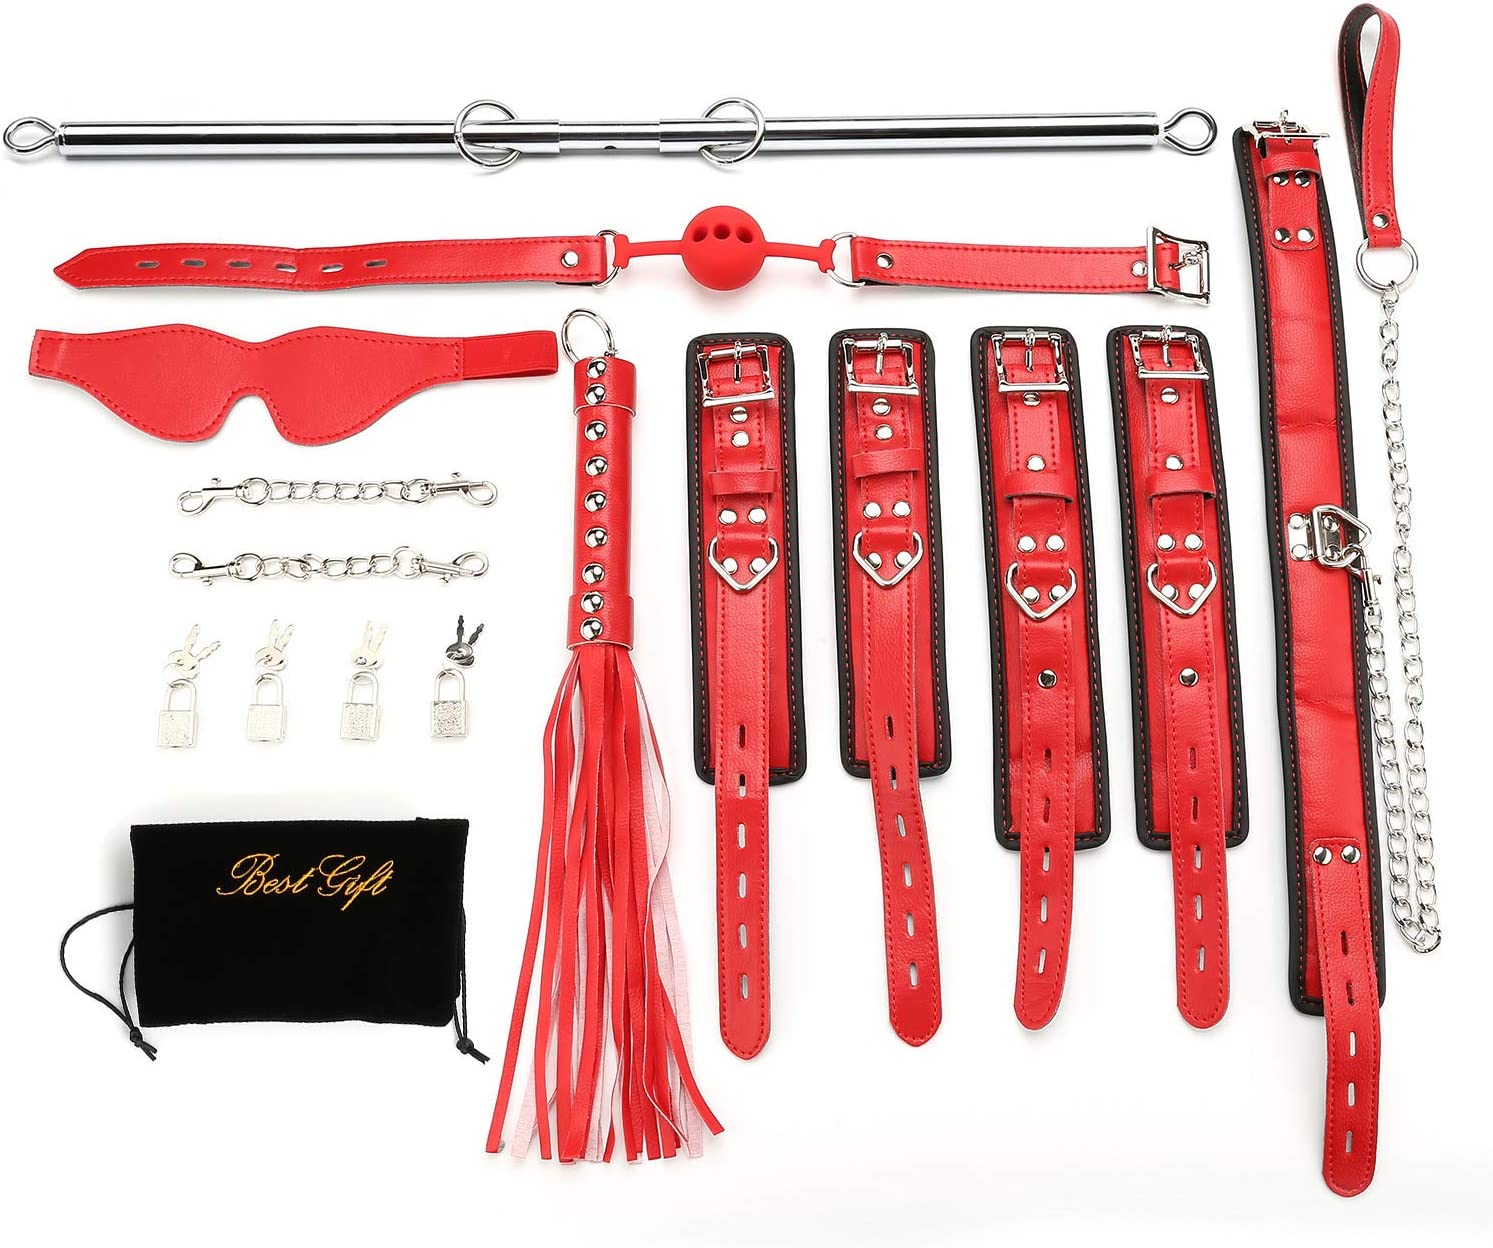 Sovyime Expandable Silver Spreader Bar with 16pcs Red Lichi Adjustable Straps Home Indoor Sports Training Aid Tools Home Yoga Gift Set